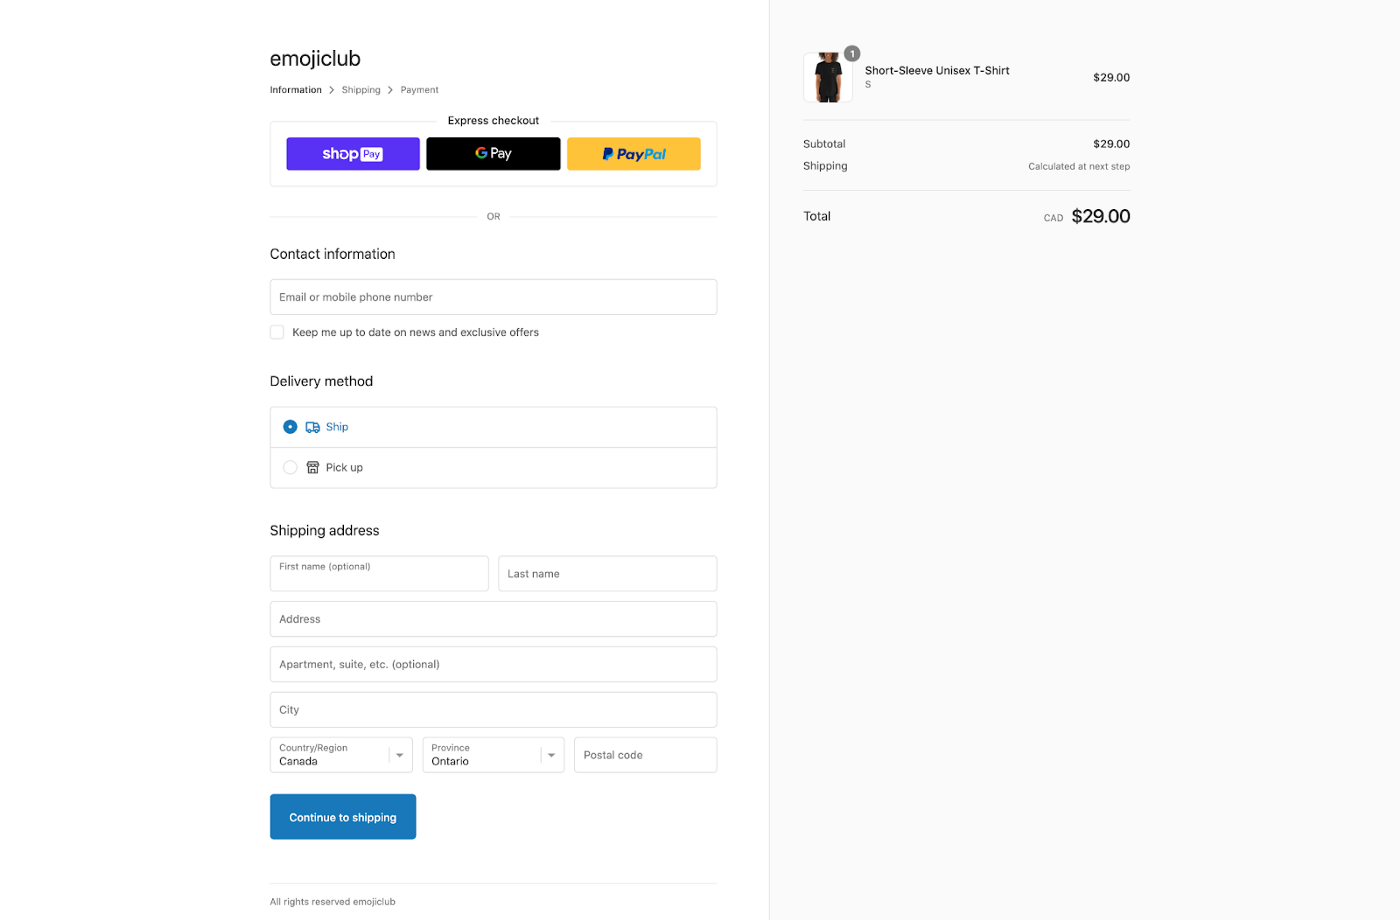 Checkout screen with 3 pages for information, shipping and payment and plenty of whitespace.